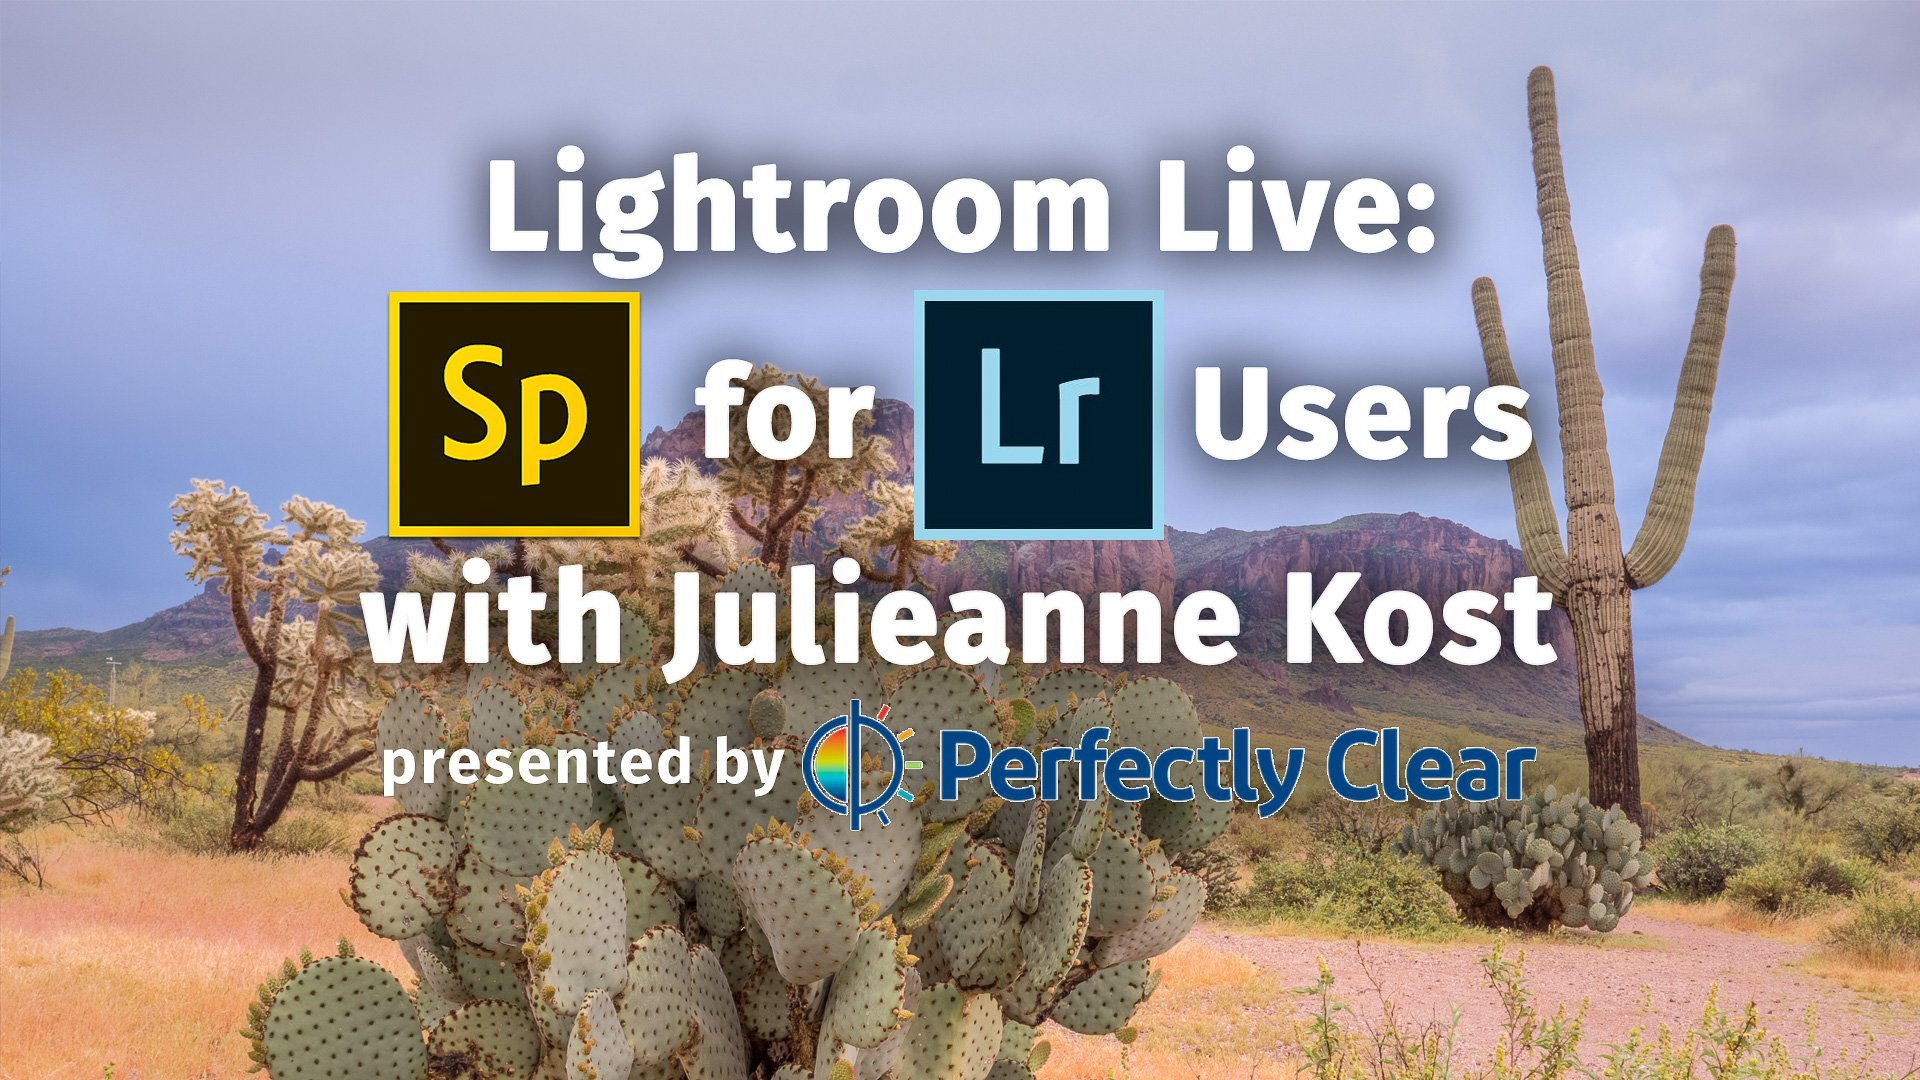 Lightroom Live: Adobe Spark with Julieanne Kost - Perfectly